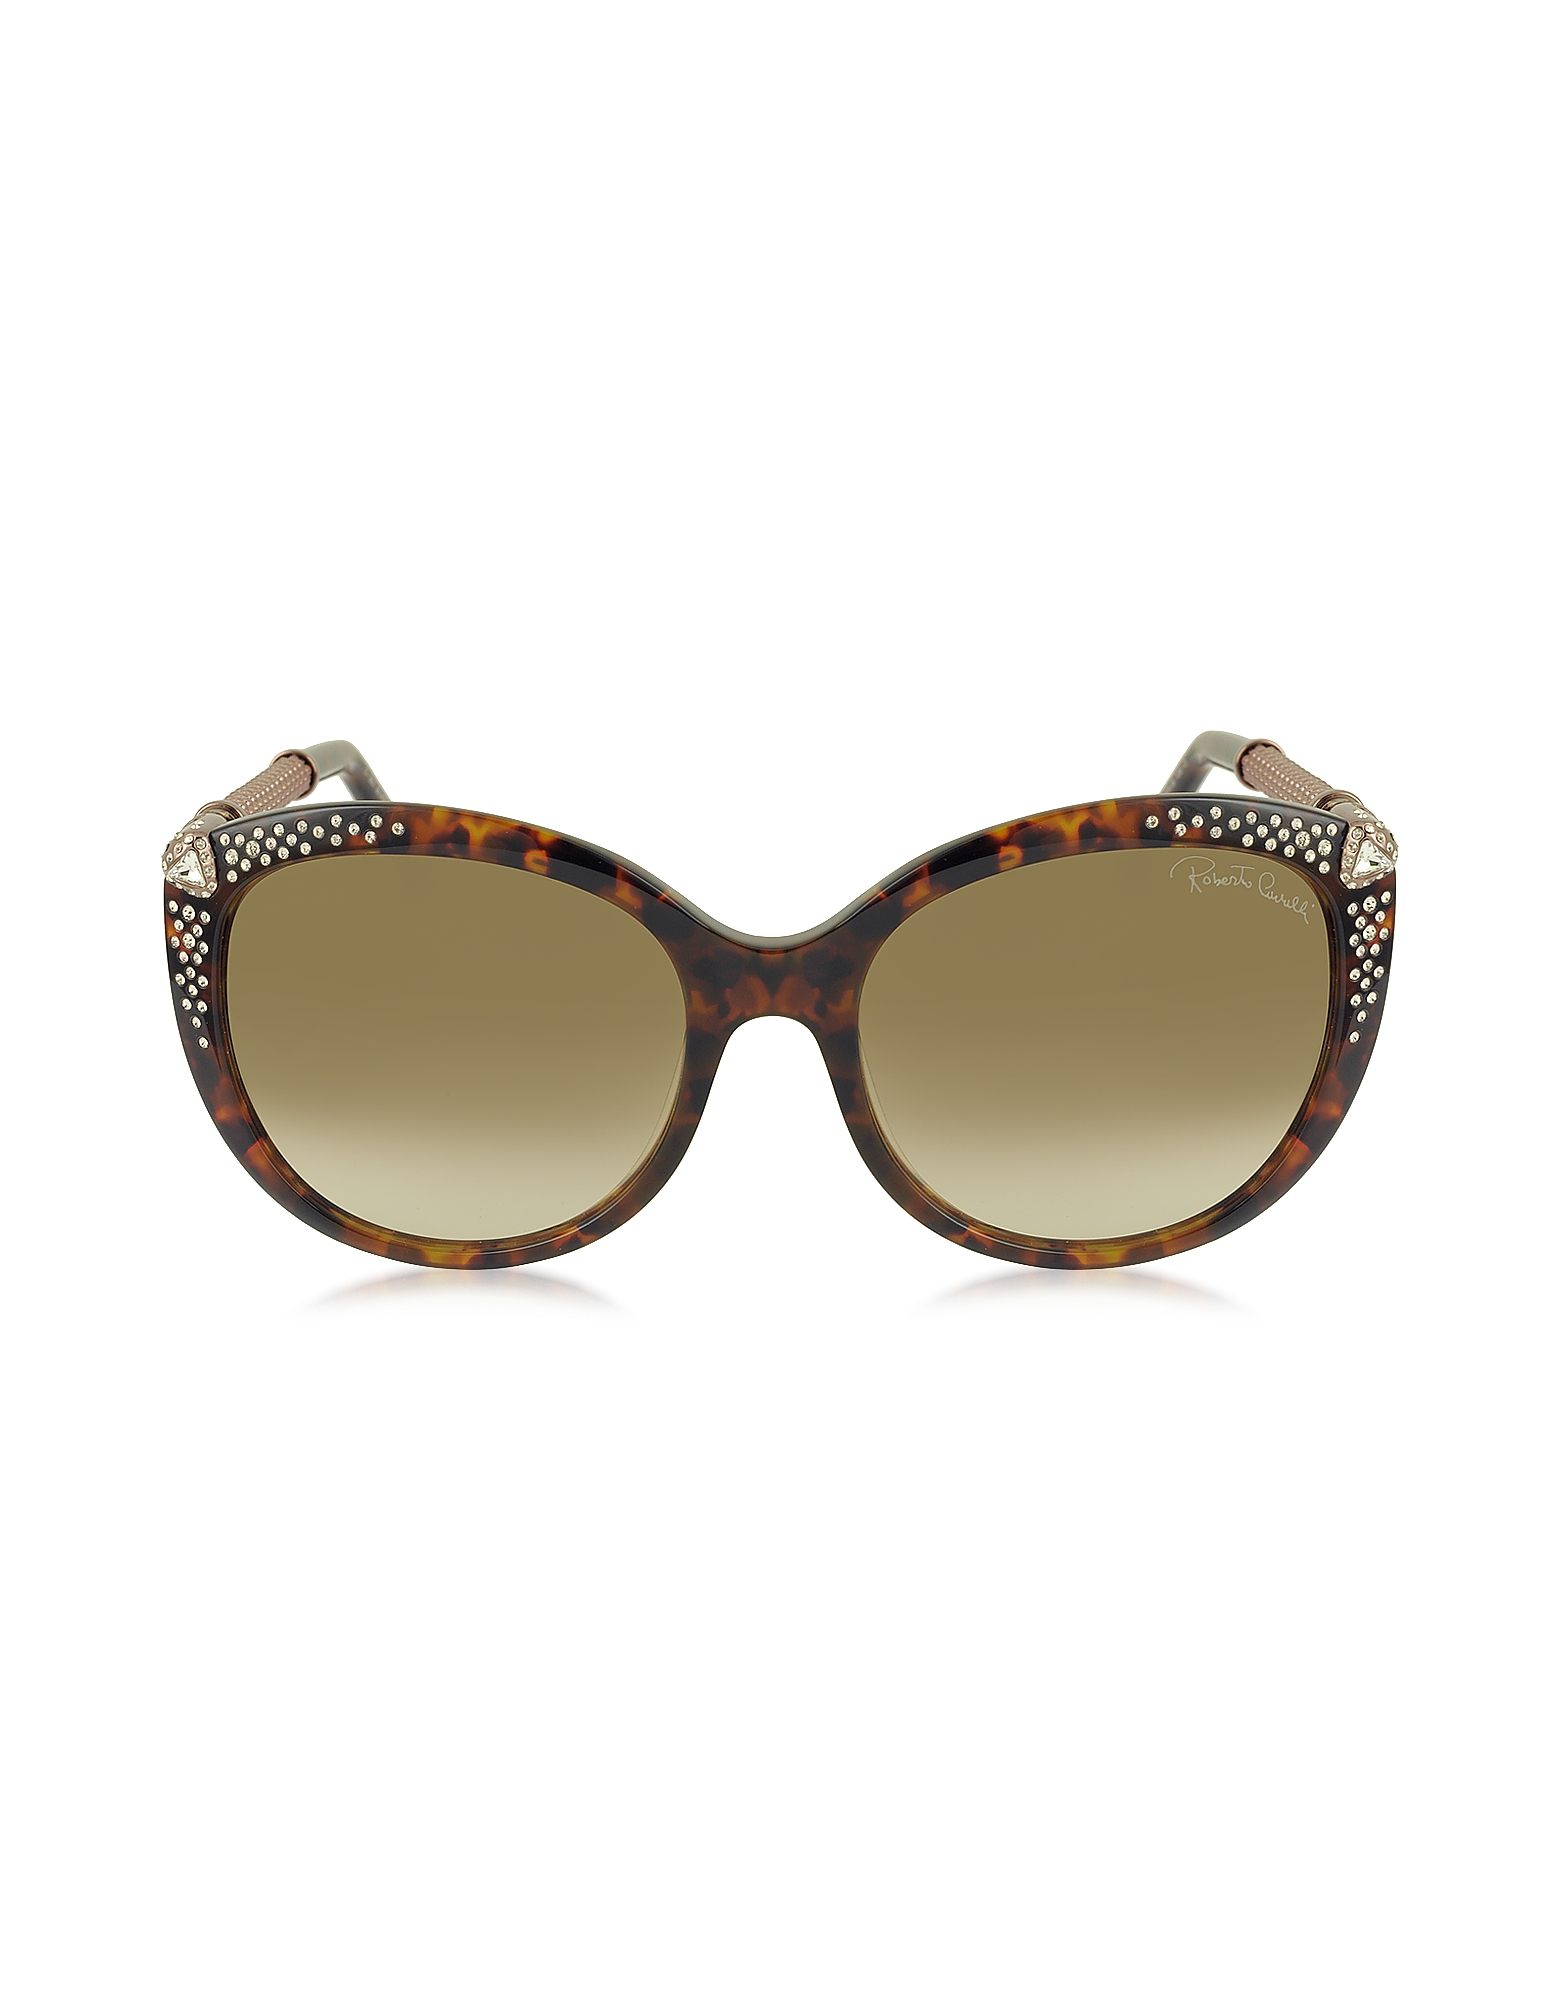 Roberto Cavalli Sunglasses, TANIA 979S Acetate and Crystals Women's Sunglasses